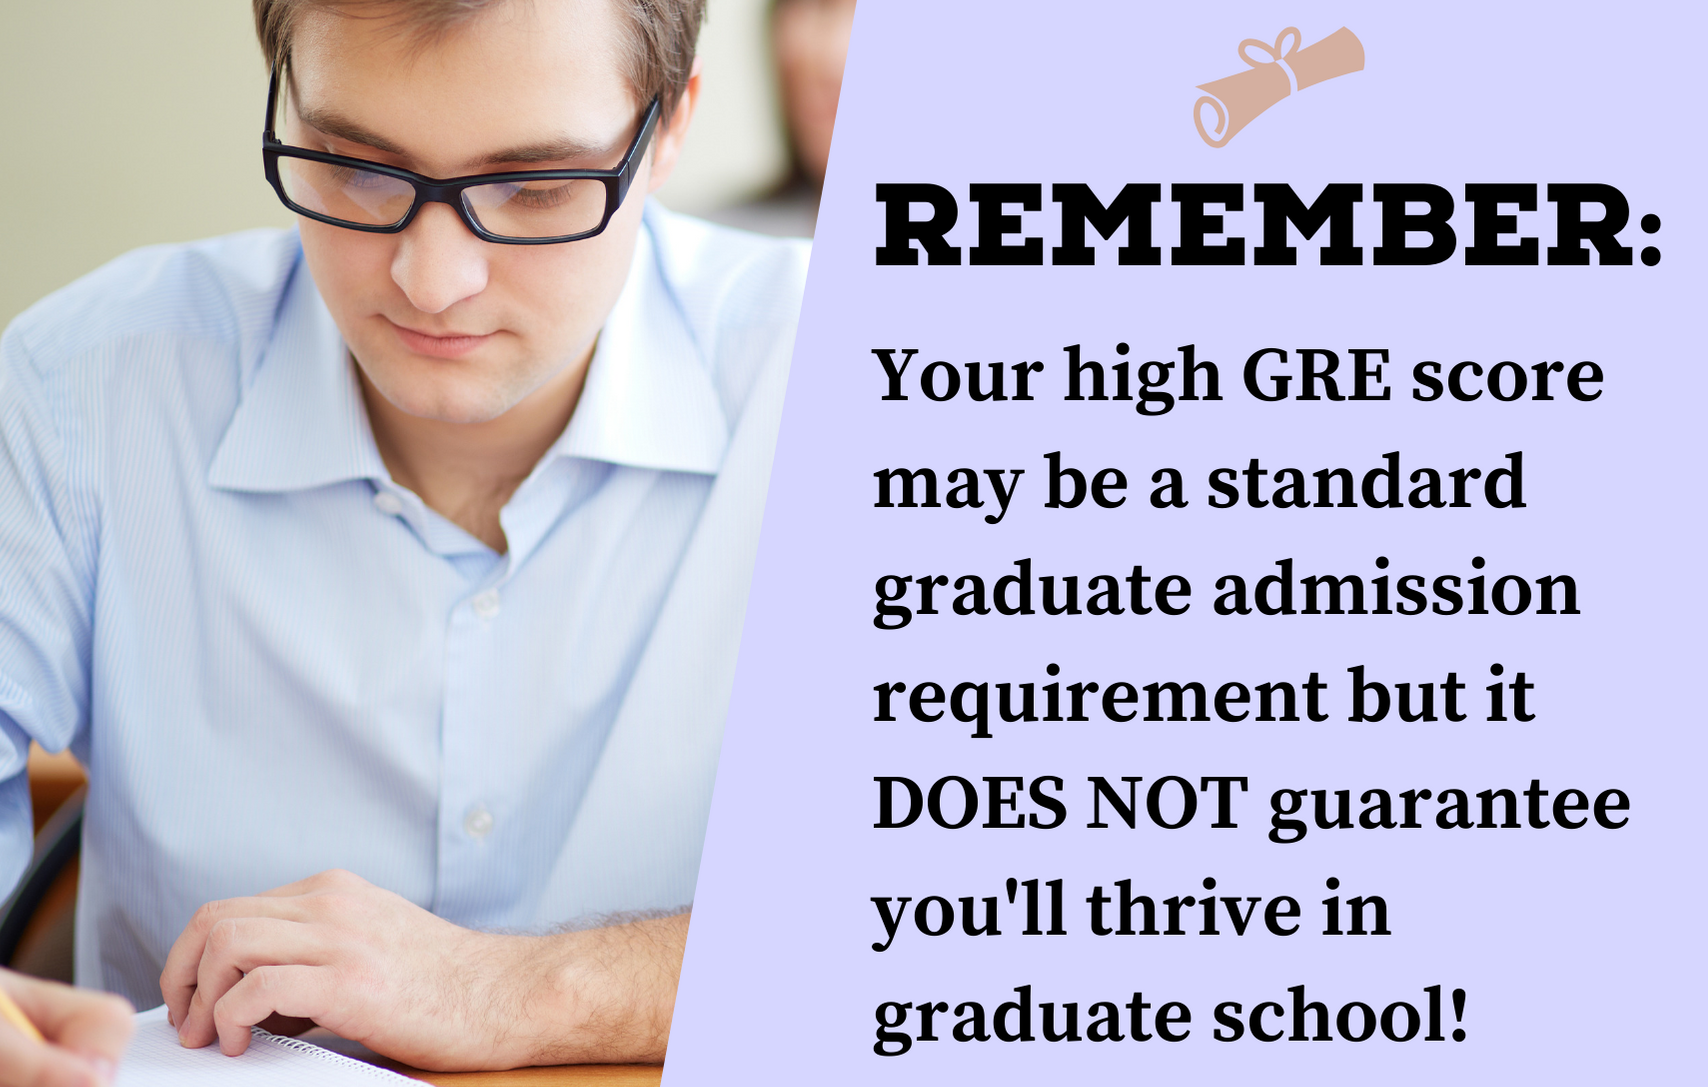 Non-GRE Colleges fact 2